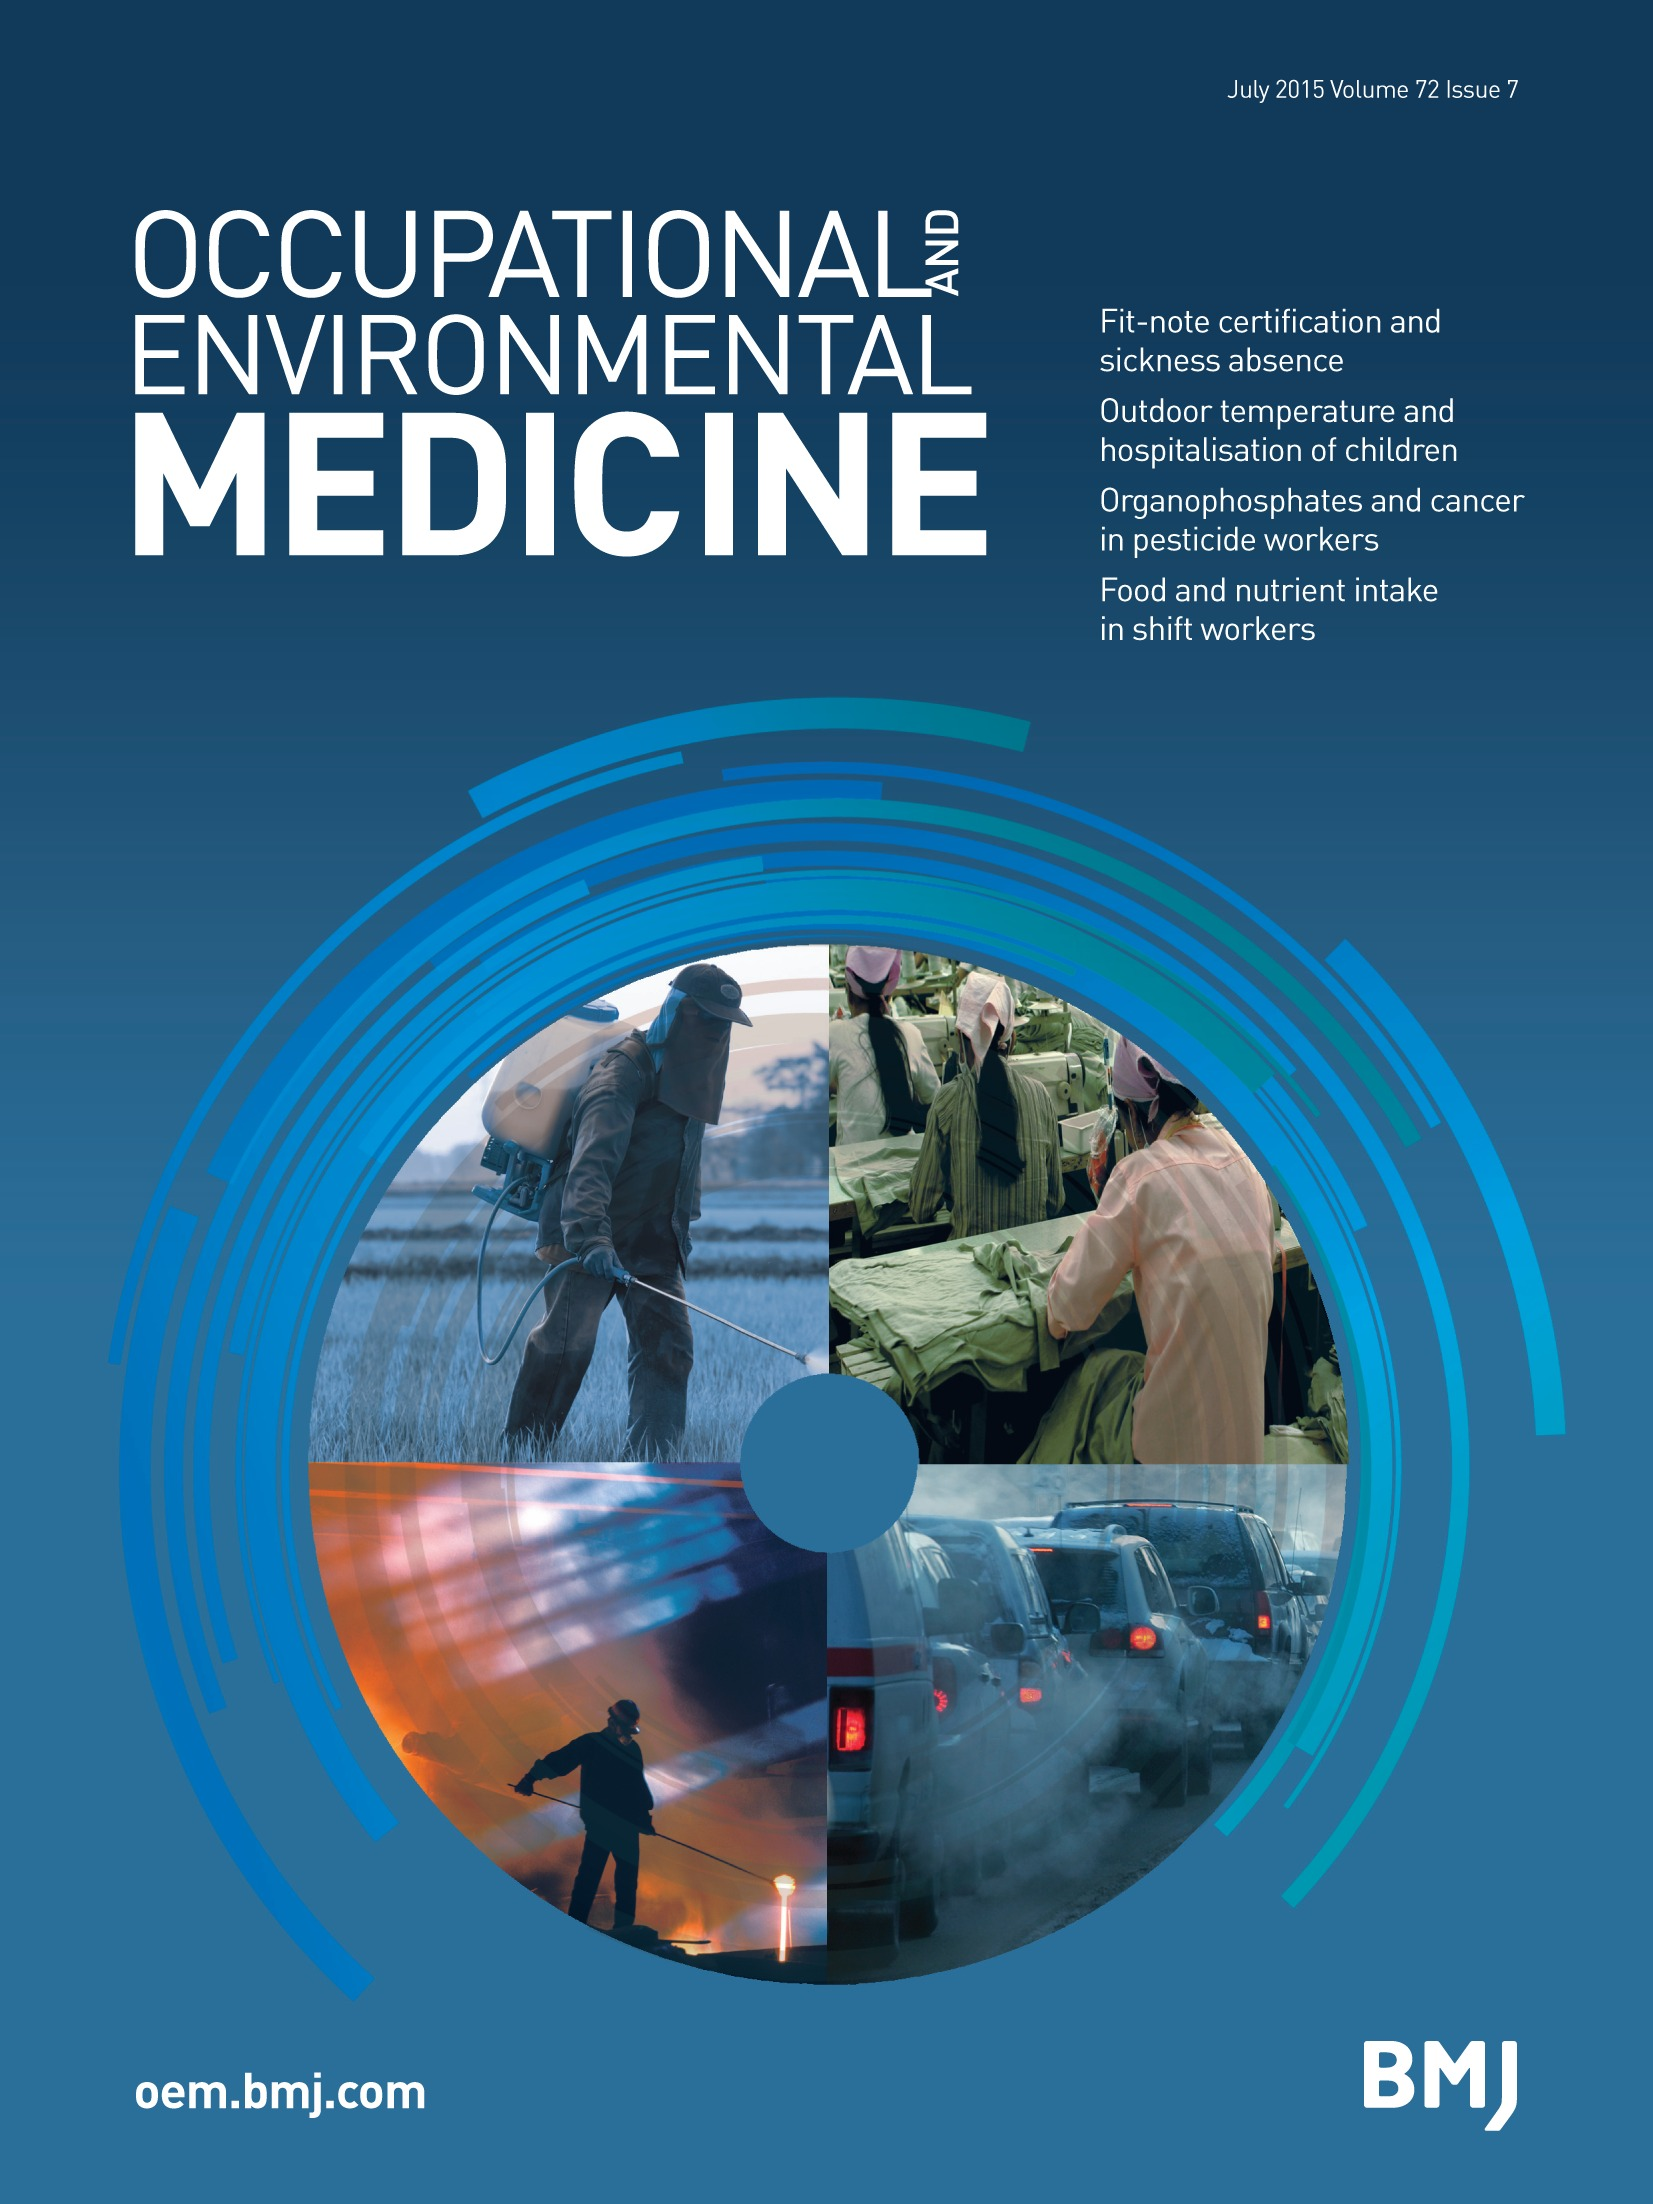 Food And Nutrient Intake Among Workers With Different Shift Systems |  Occupational U0026 Environmental Medicine